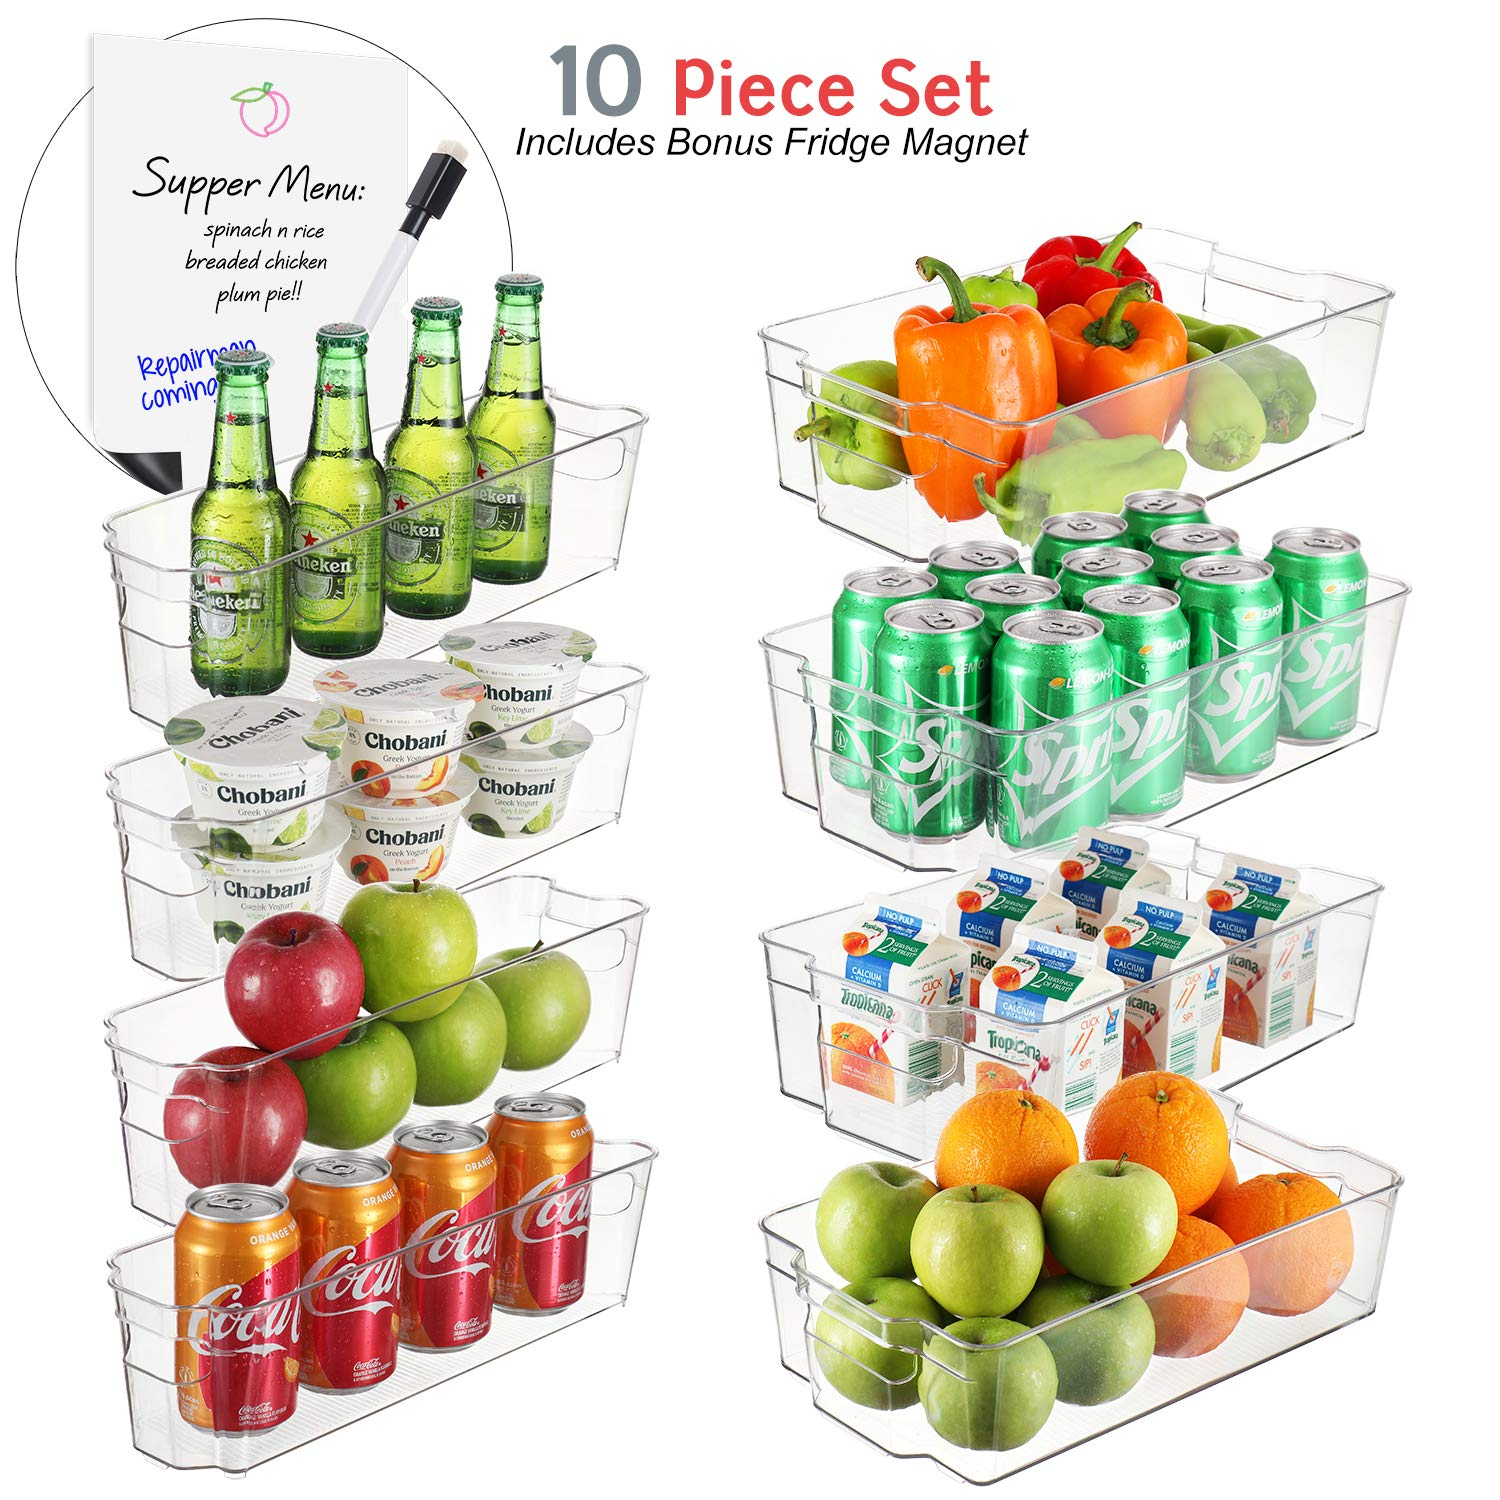 StorageMaid Set Of 8 Refrigerator Organizer Bins - 4 Large and 4 Small Stackable Fridge Organizers for Freezer, Kitchen, Countertops, Cabinets - Clear Plastic Pantry Storage Rack